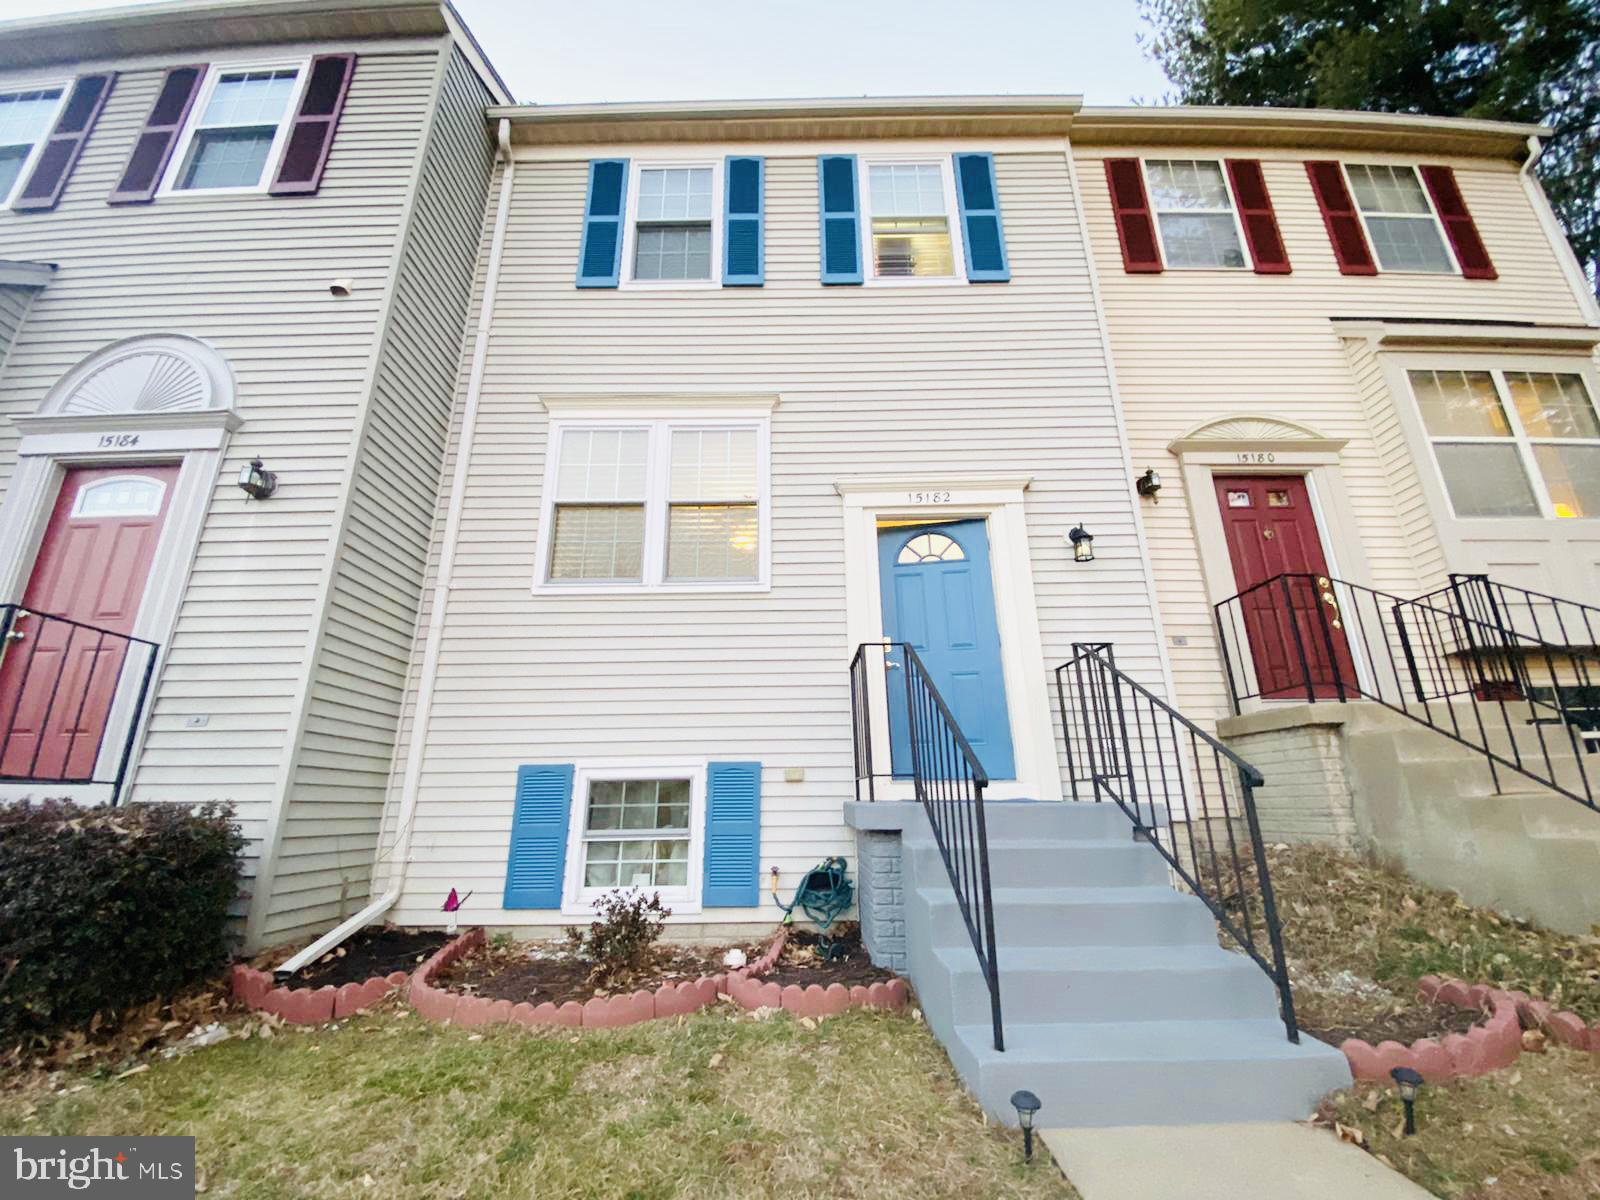 3 level townhouse with 3 bedrooms and 2.5 baths. Private back yard with fencing and a private deck.